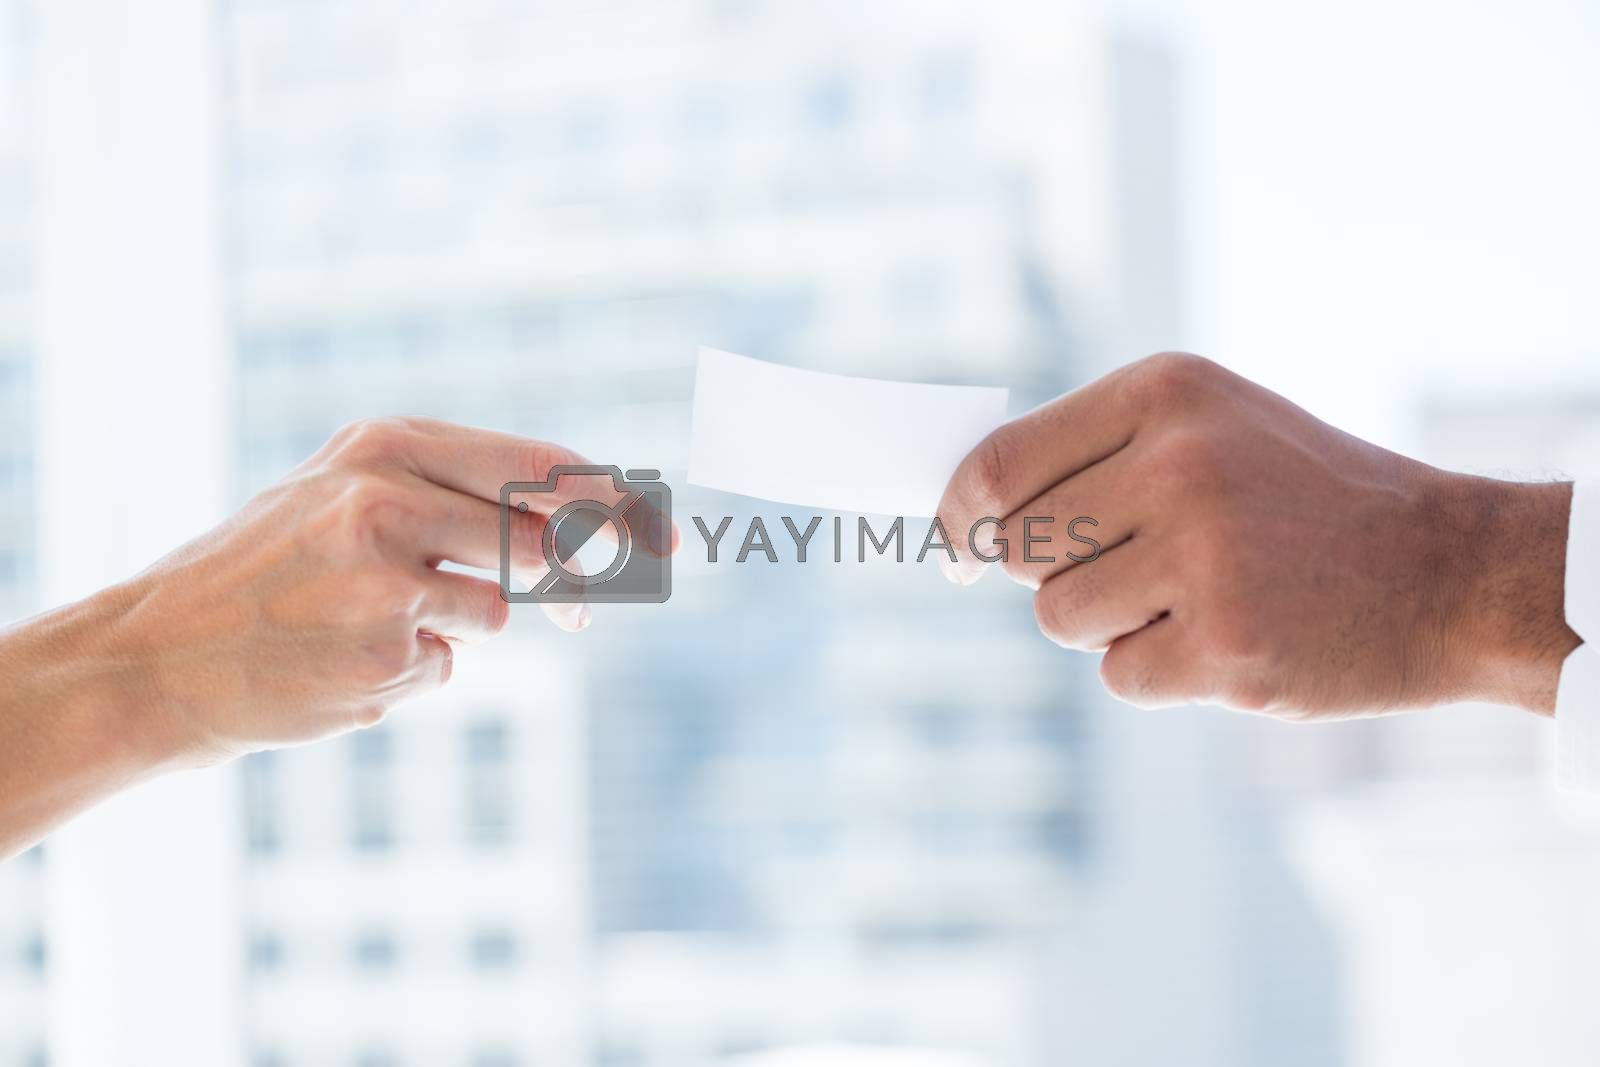 Royalty free image of Hands giving small paper sheet to another one by Wavebreakmedia